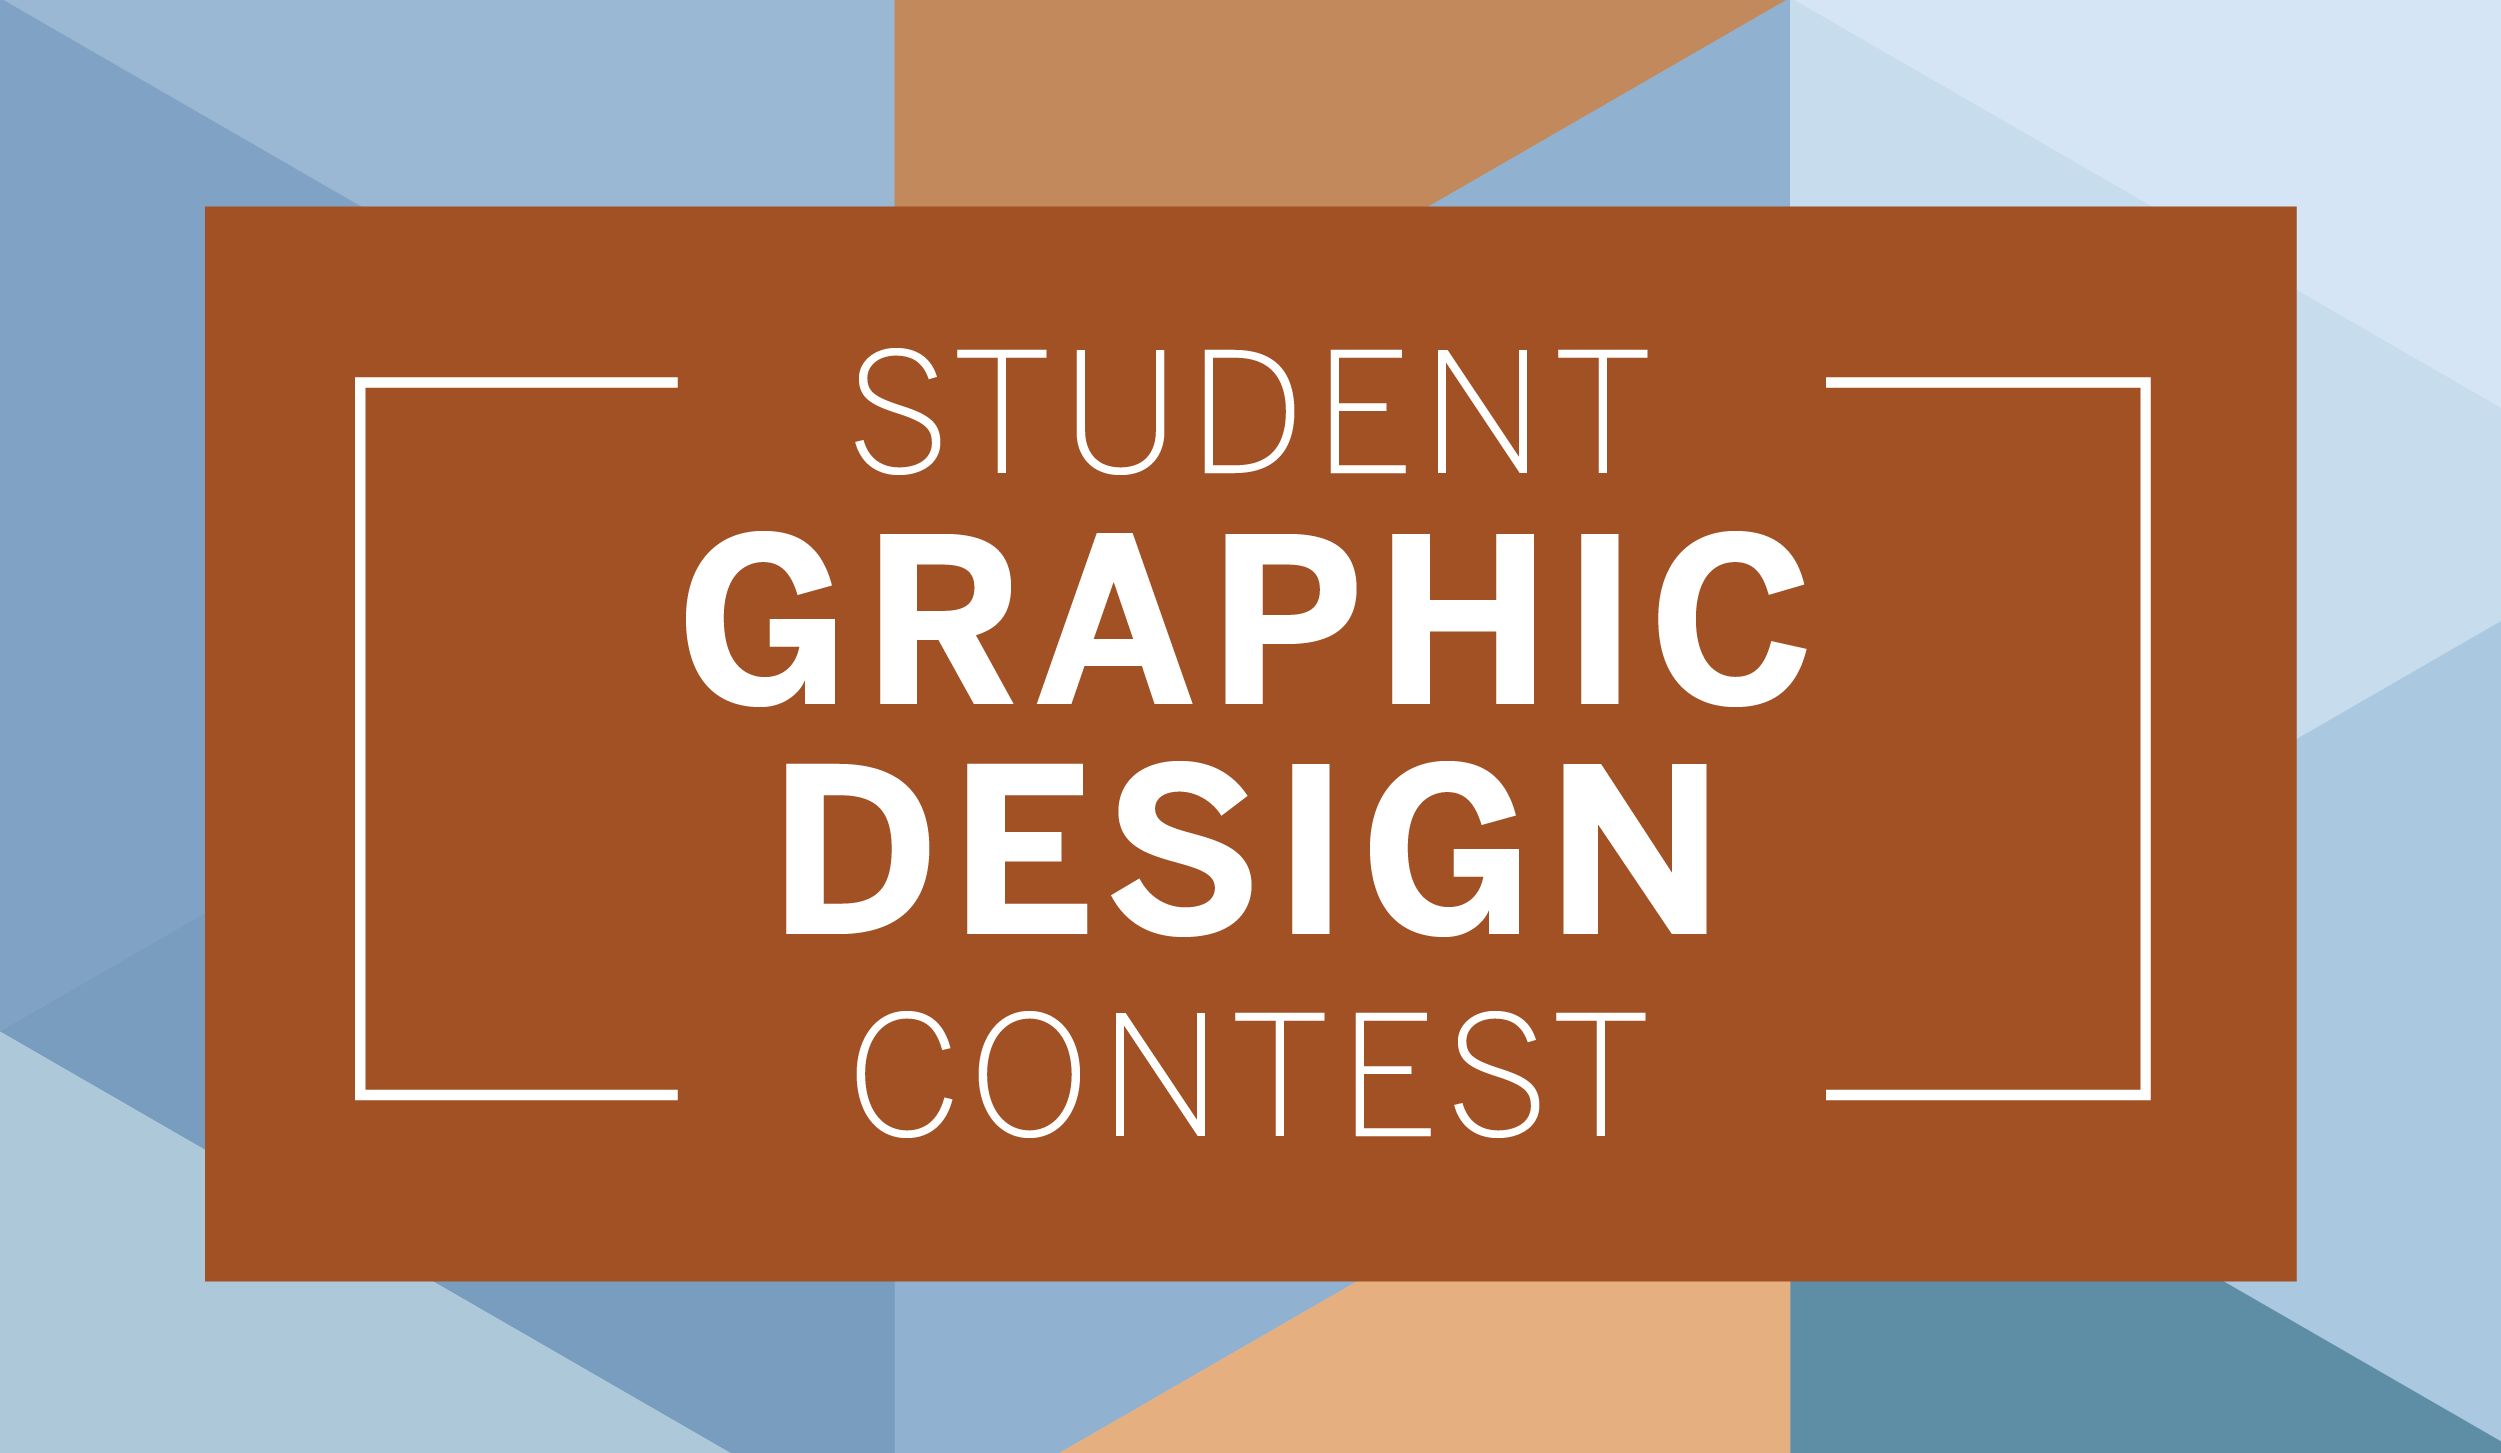 Student Graphic Design Contest - NISOD